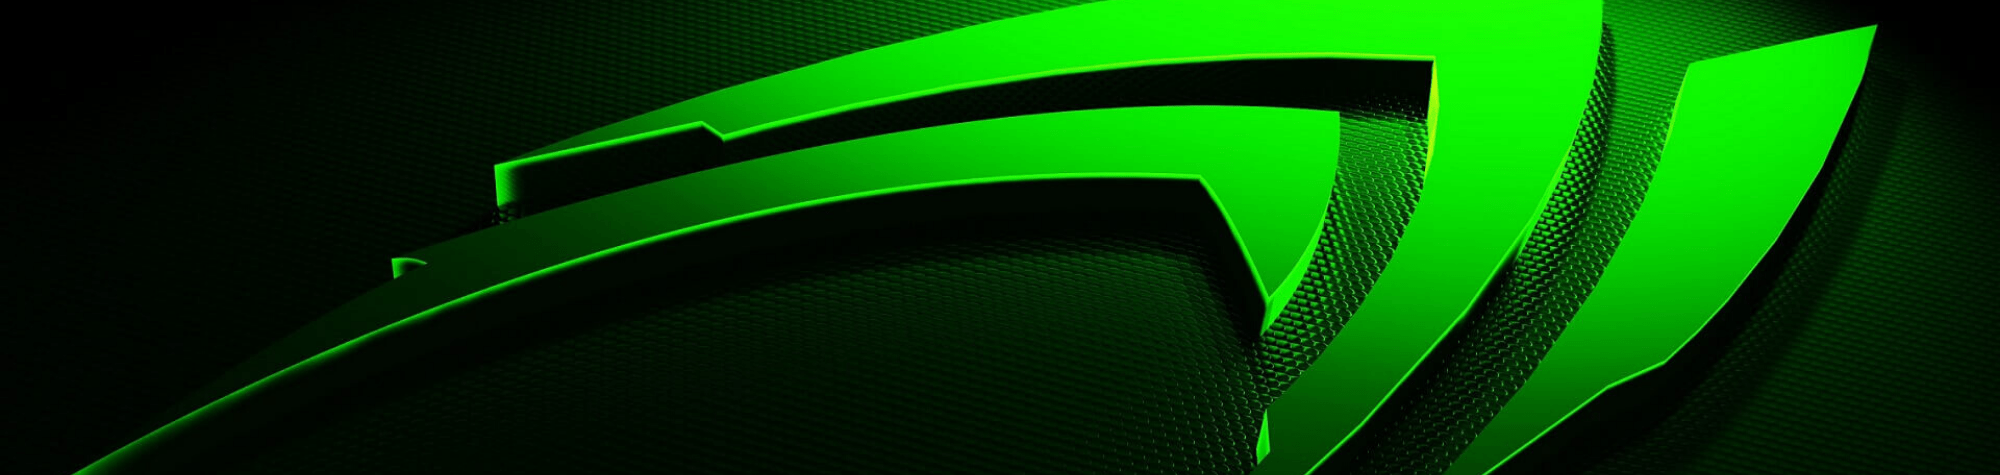 DirectX 12 Ultimate is now supported by NVIDIA's new Driver